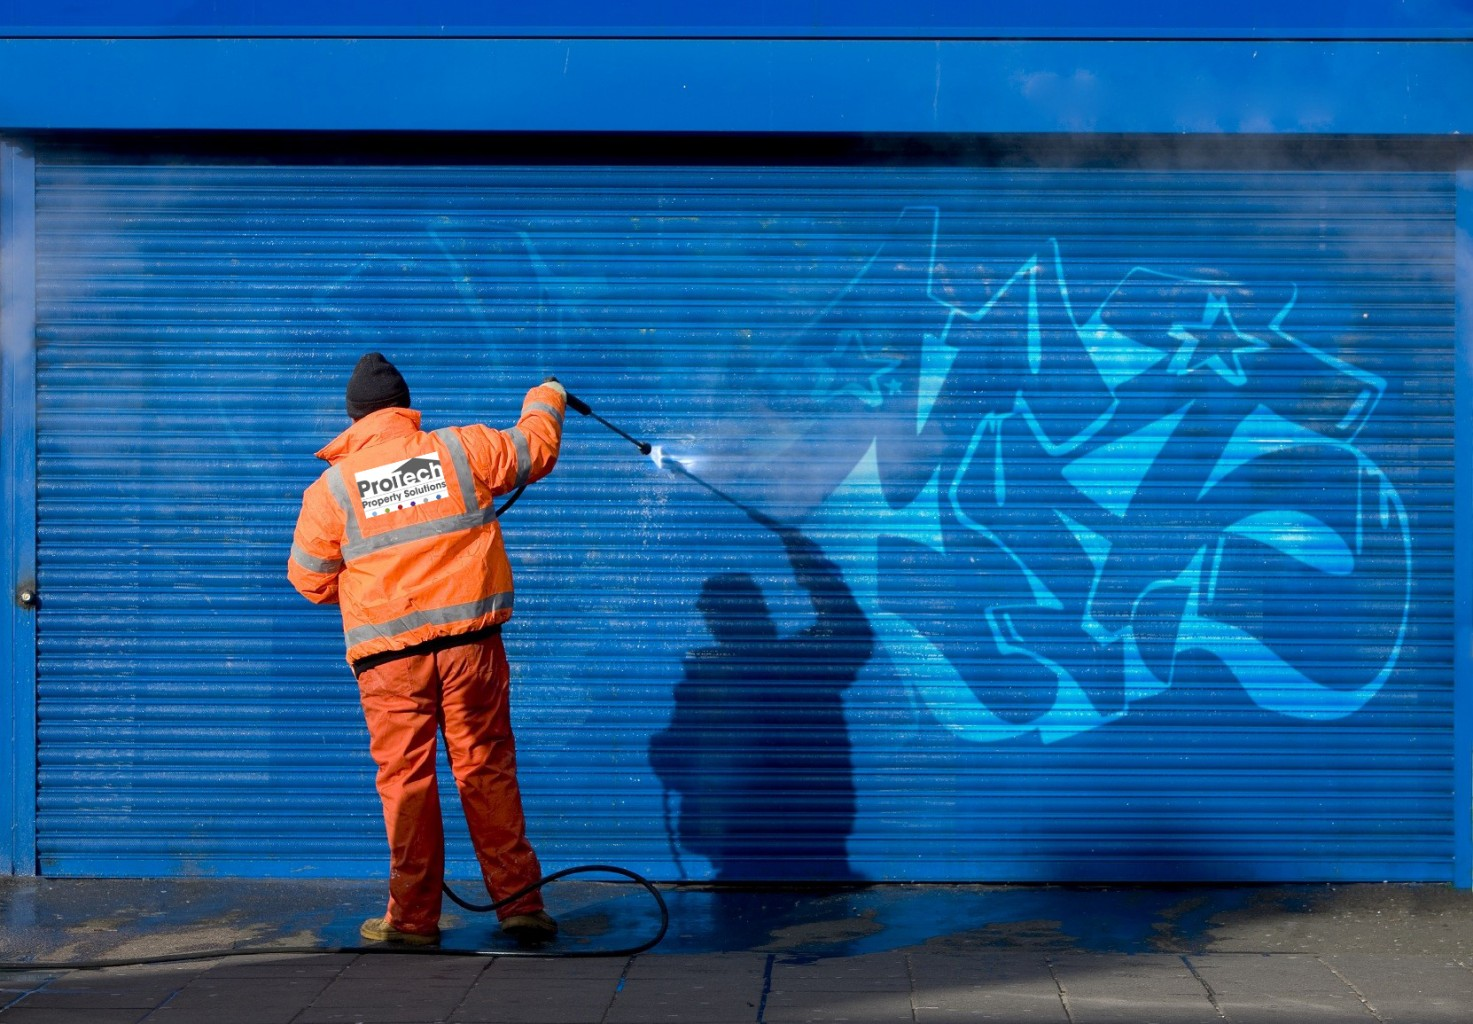 Chewing Gum And Graffiti Removal